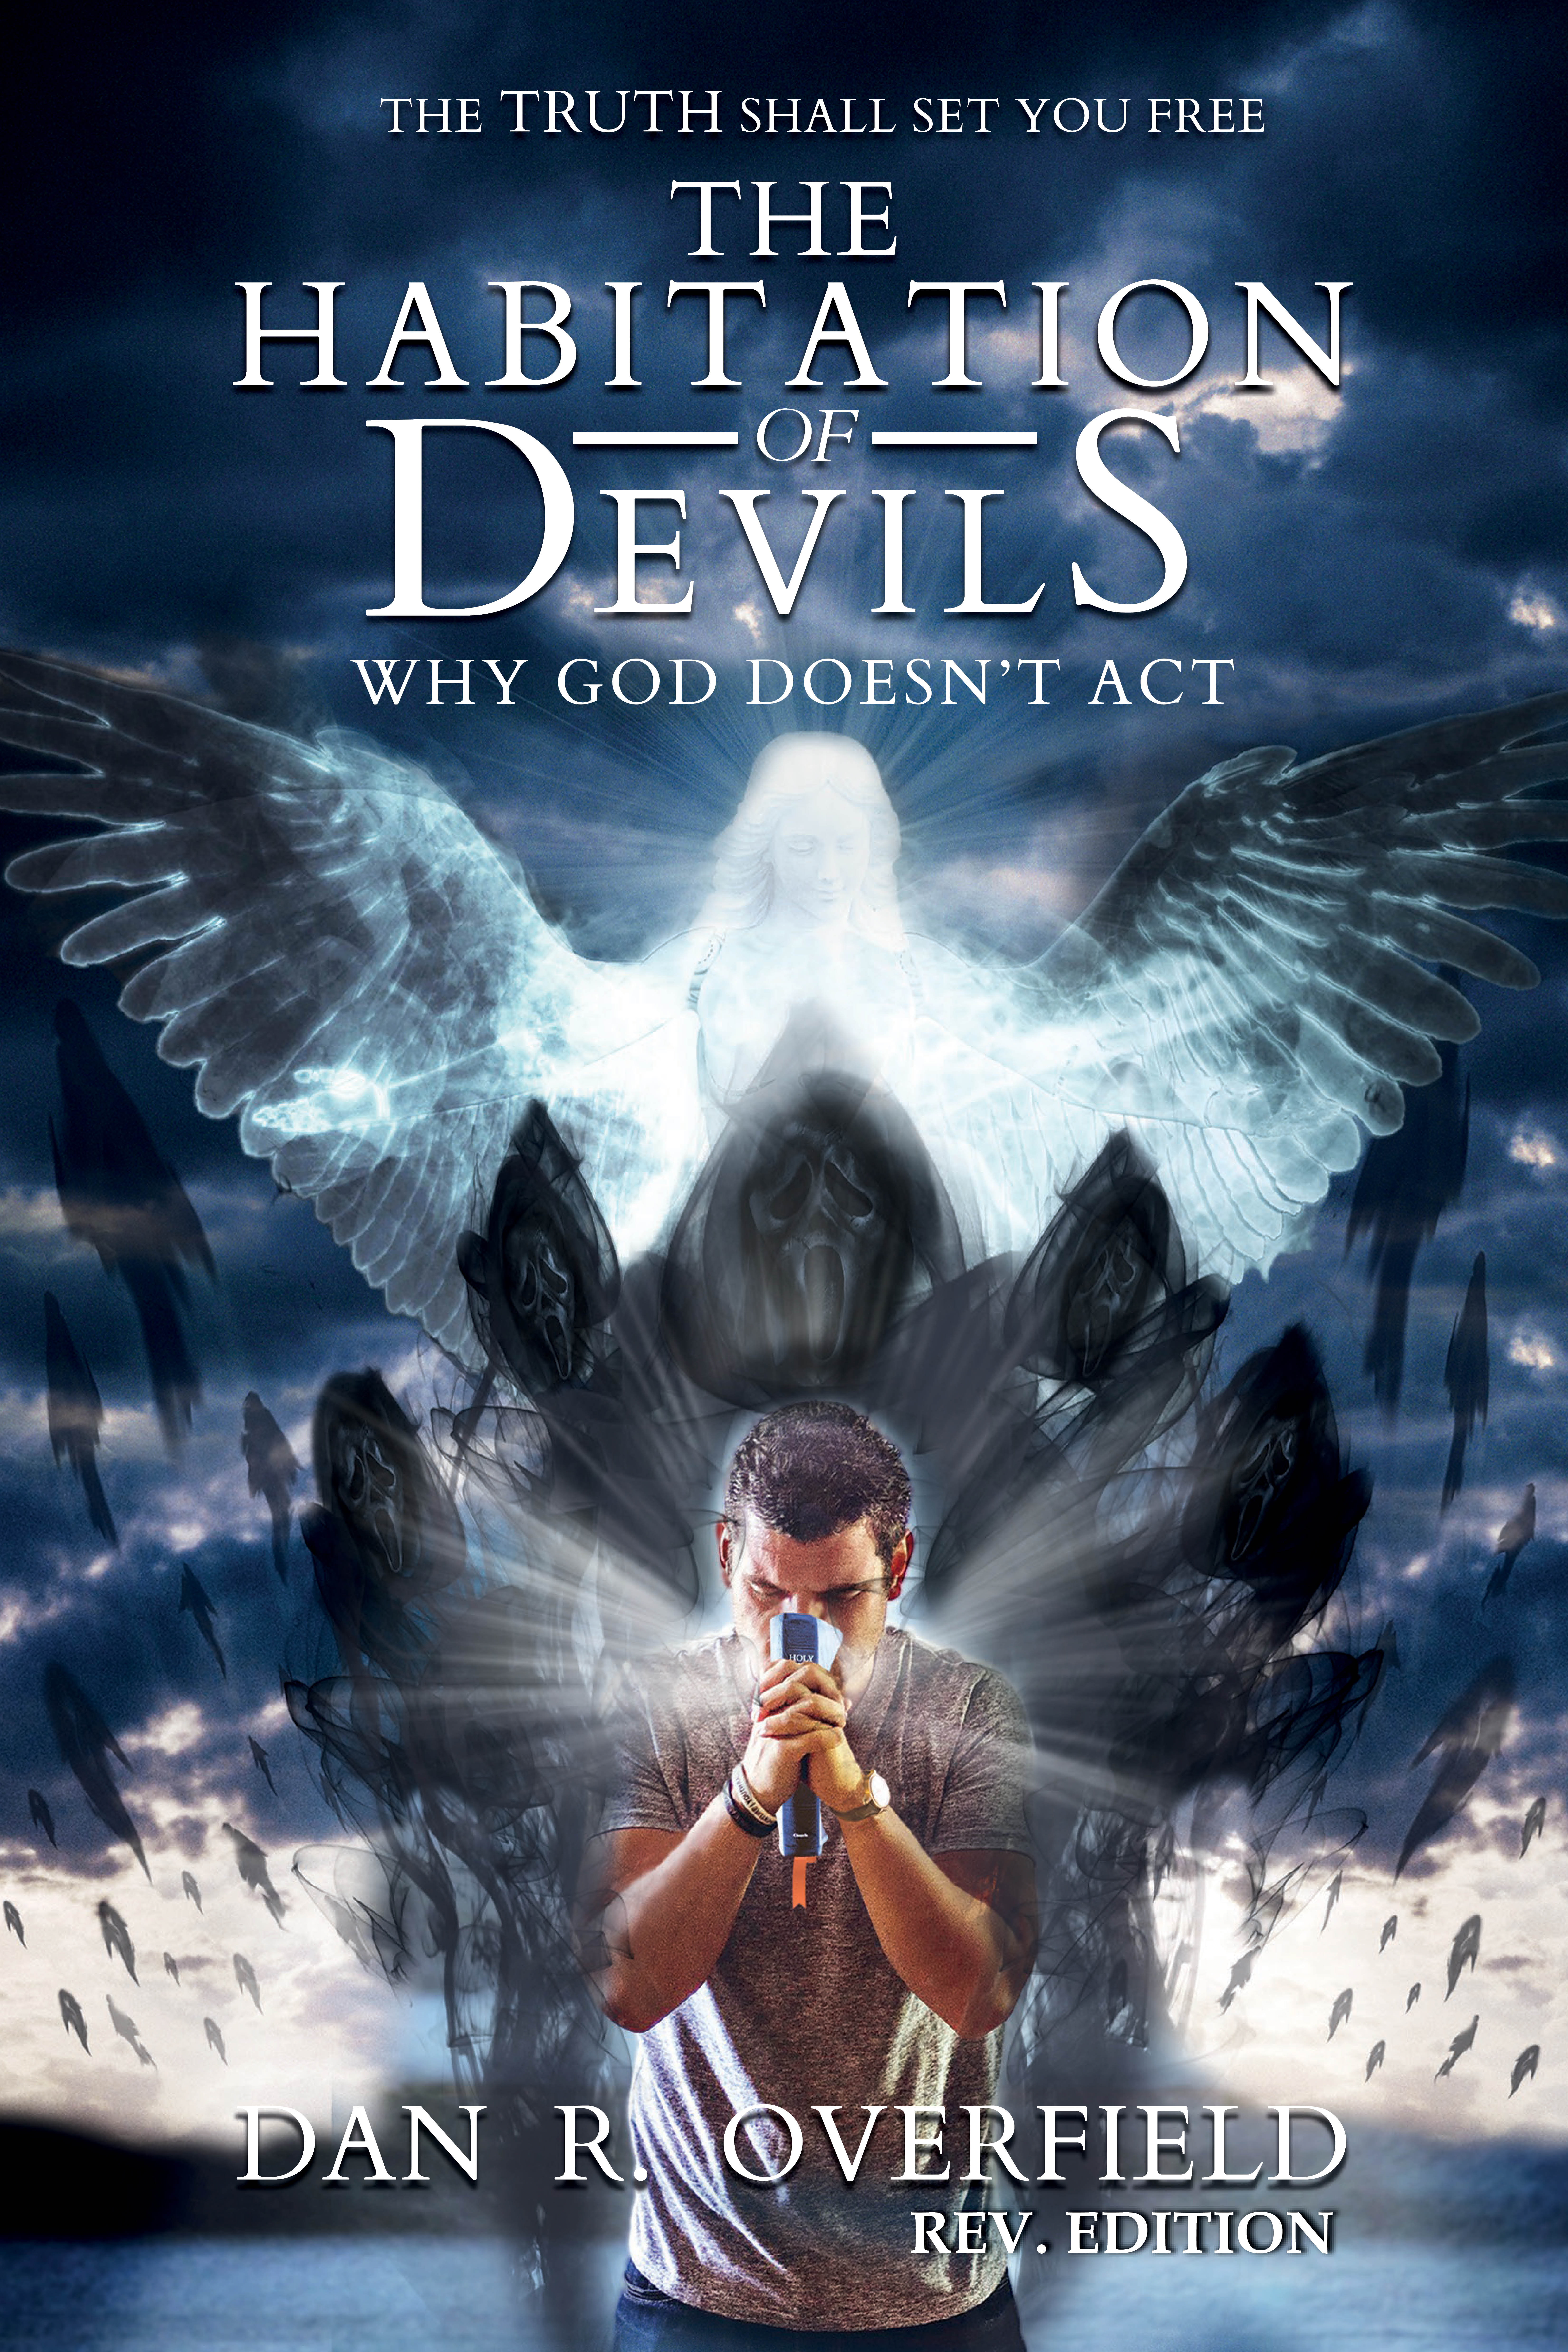 THE HABITATION OF DEVILS: WHY GOD DOESN'T ACT